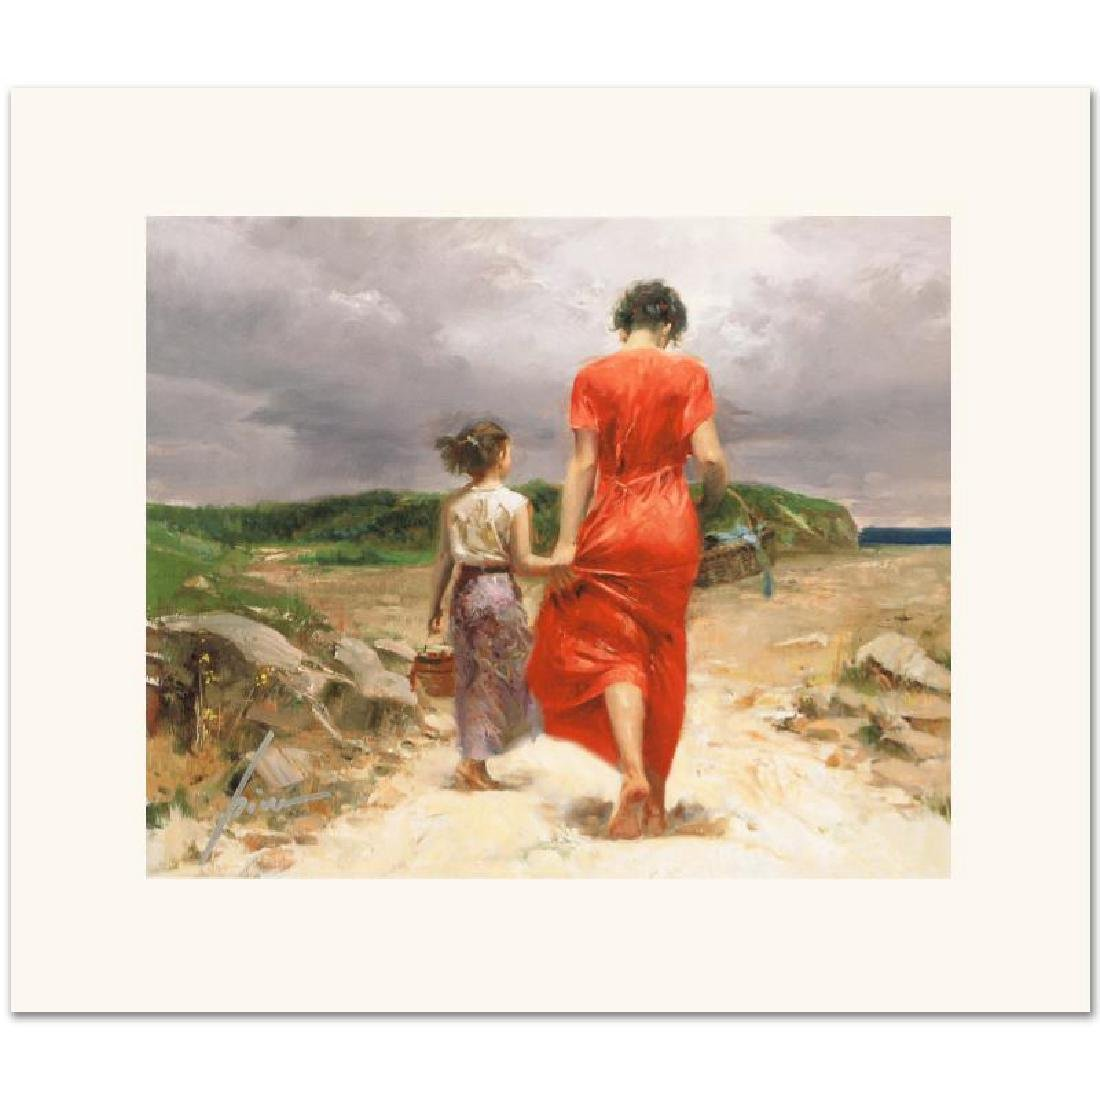 Homeward Bound Limited Edition Giclee on Canvas by Pino